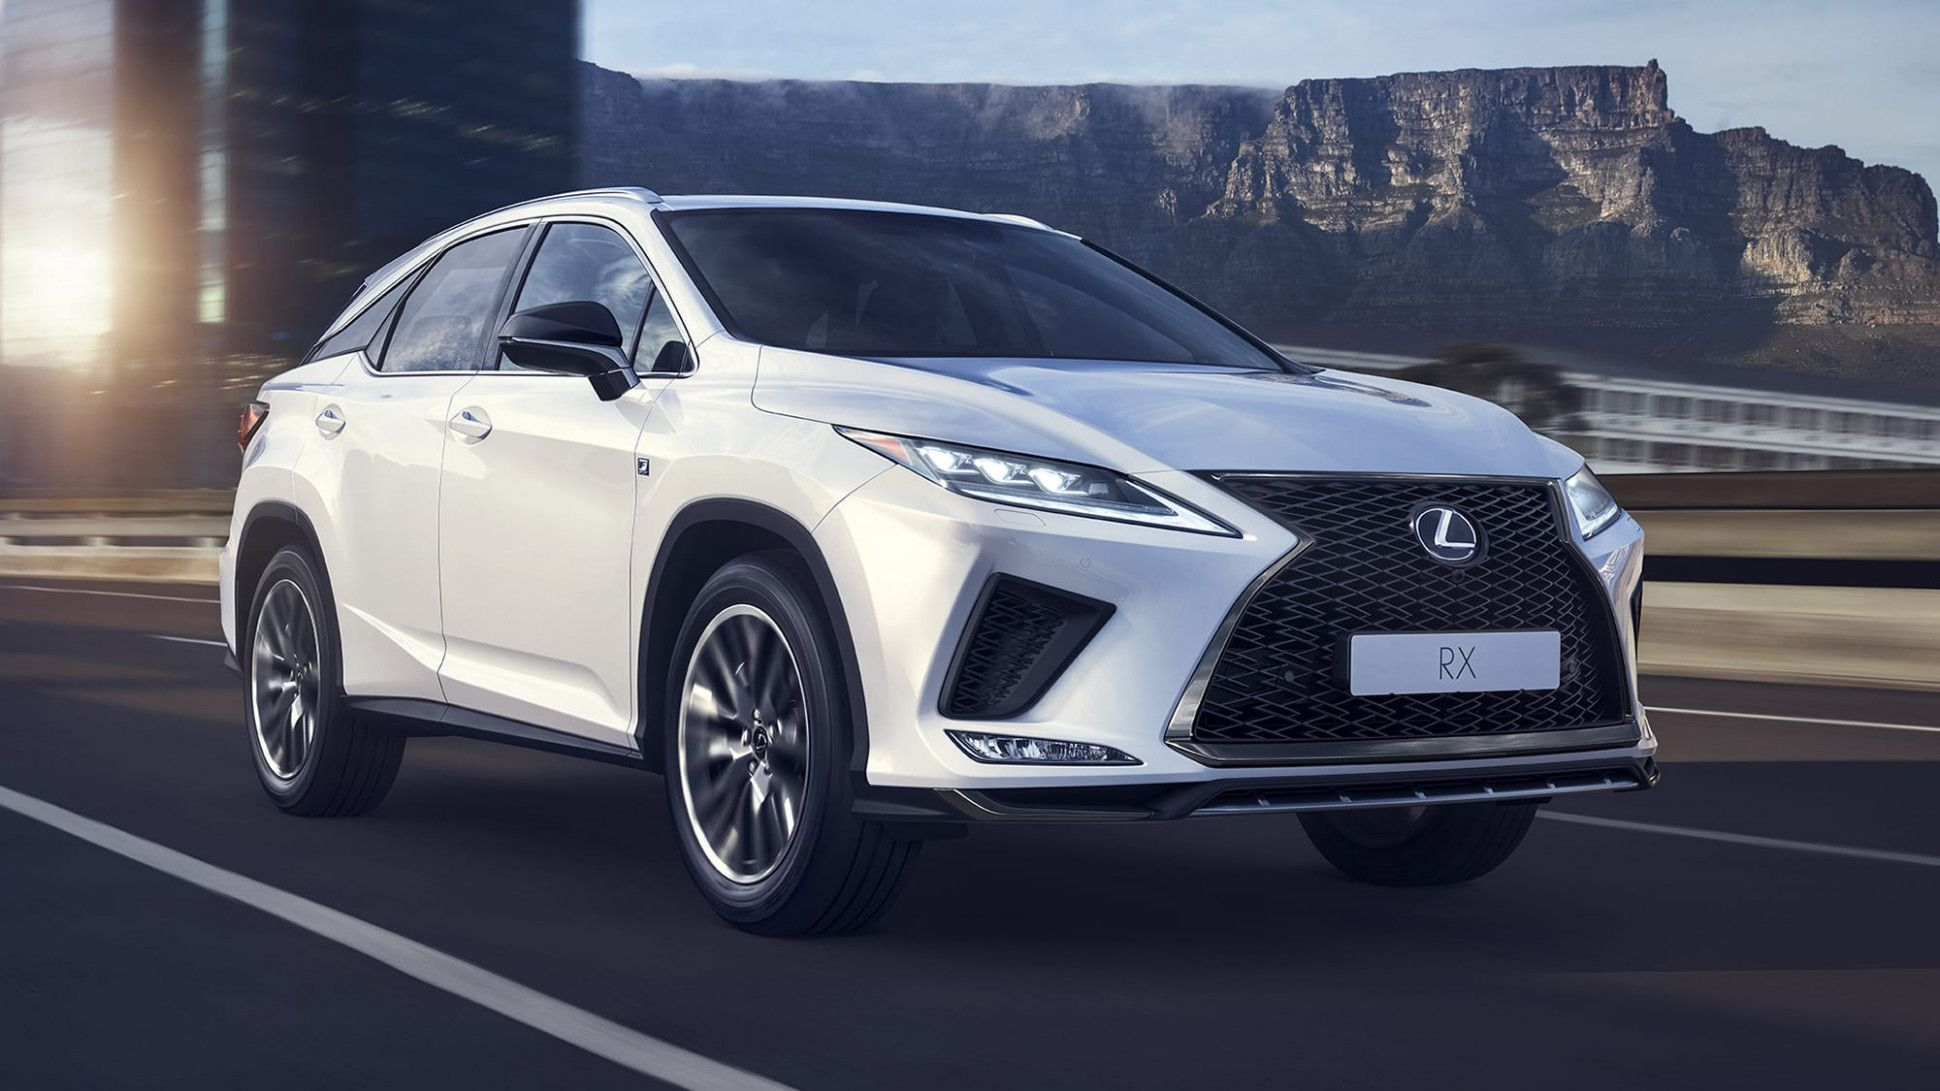 11 Image Lexus Rx 2020 Price In 2020 Lexus Top Luxury Cars Luxury Suv